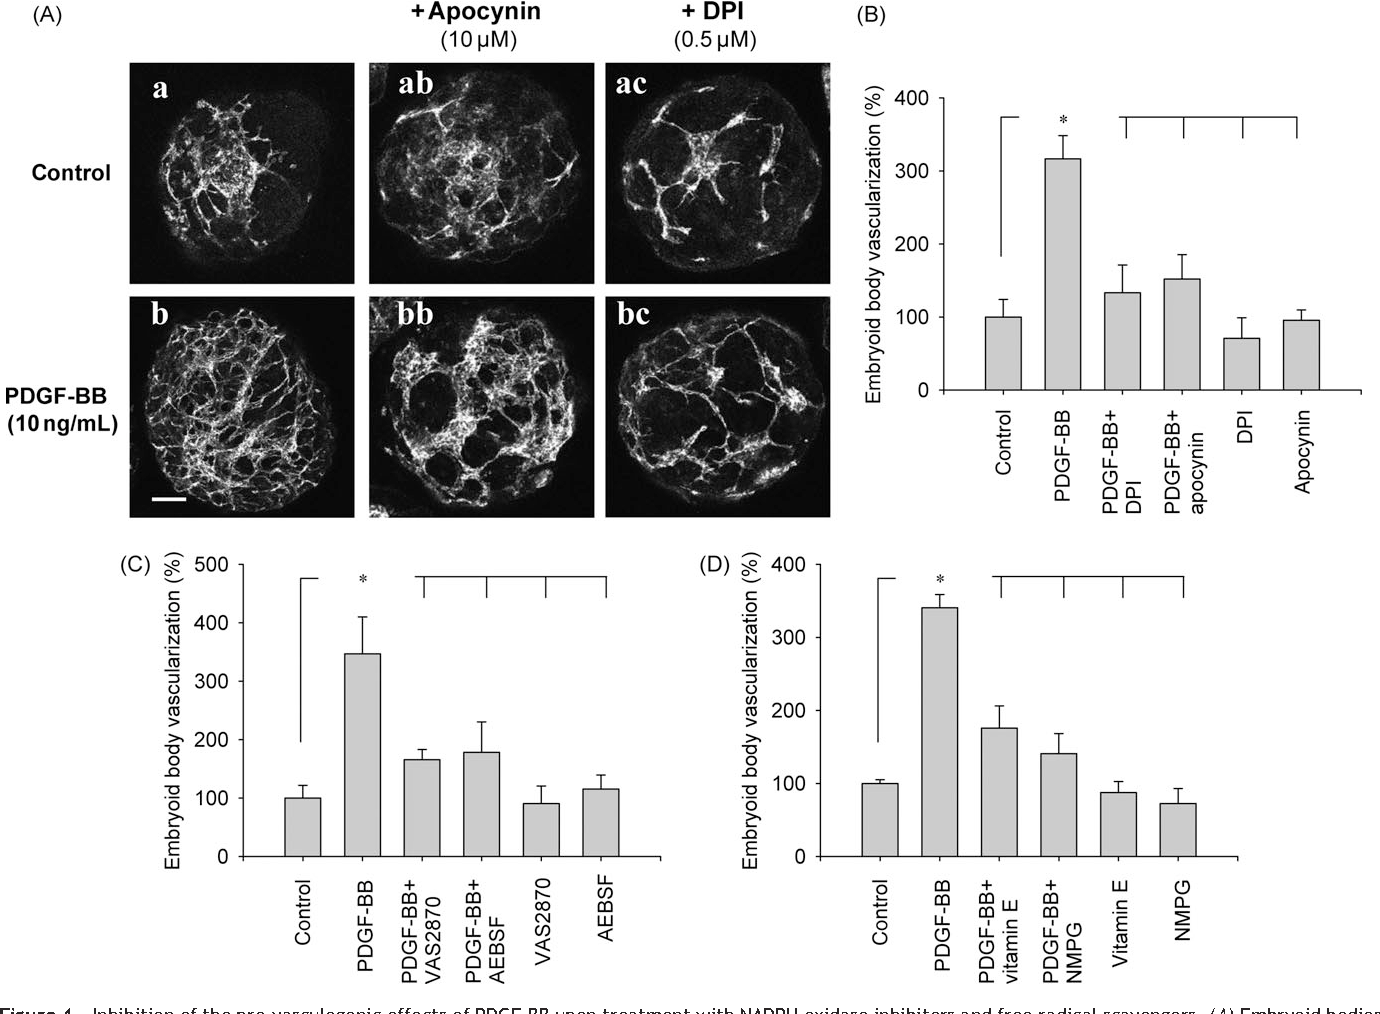 Figure 4 Inhibition of the pro-vasculogenic effects of PDGF-BB upon treatment with NADPH oxidase inhibitors and free radical scavengers. (A) Embryoid bodies immunostained for CD31: (a) control, (ab) treated with apocynin, (ac) treated with DPI, (b) PDGF-BB-treated, (bb) treated with PDGF-BB in the presence of apocynin, and (bc) treated with PDGF-BB in the presence of DPI. The bar represents 200 mm. (B and C) Quantification of CD31-positive vascular structures under conditions where embryoid bodies remained either untreated (control) or were treated with either apocynin (10 mM) or DPI (1 mM) (B) or with either VAS2870 (50 mM) or AEBSF (200 mM) (C). (D) Effects of the free radical scavengers vitamin E (10 mM) and NMPG (10 mM) on PDGF-BB-induced vasculogenesis. *P , 0.05, significantly different as indicated.